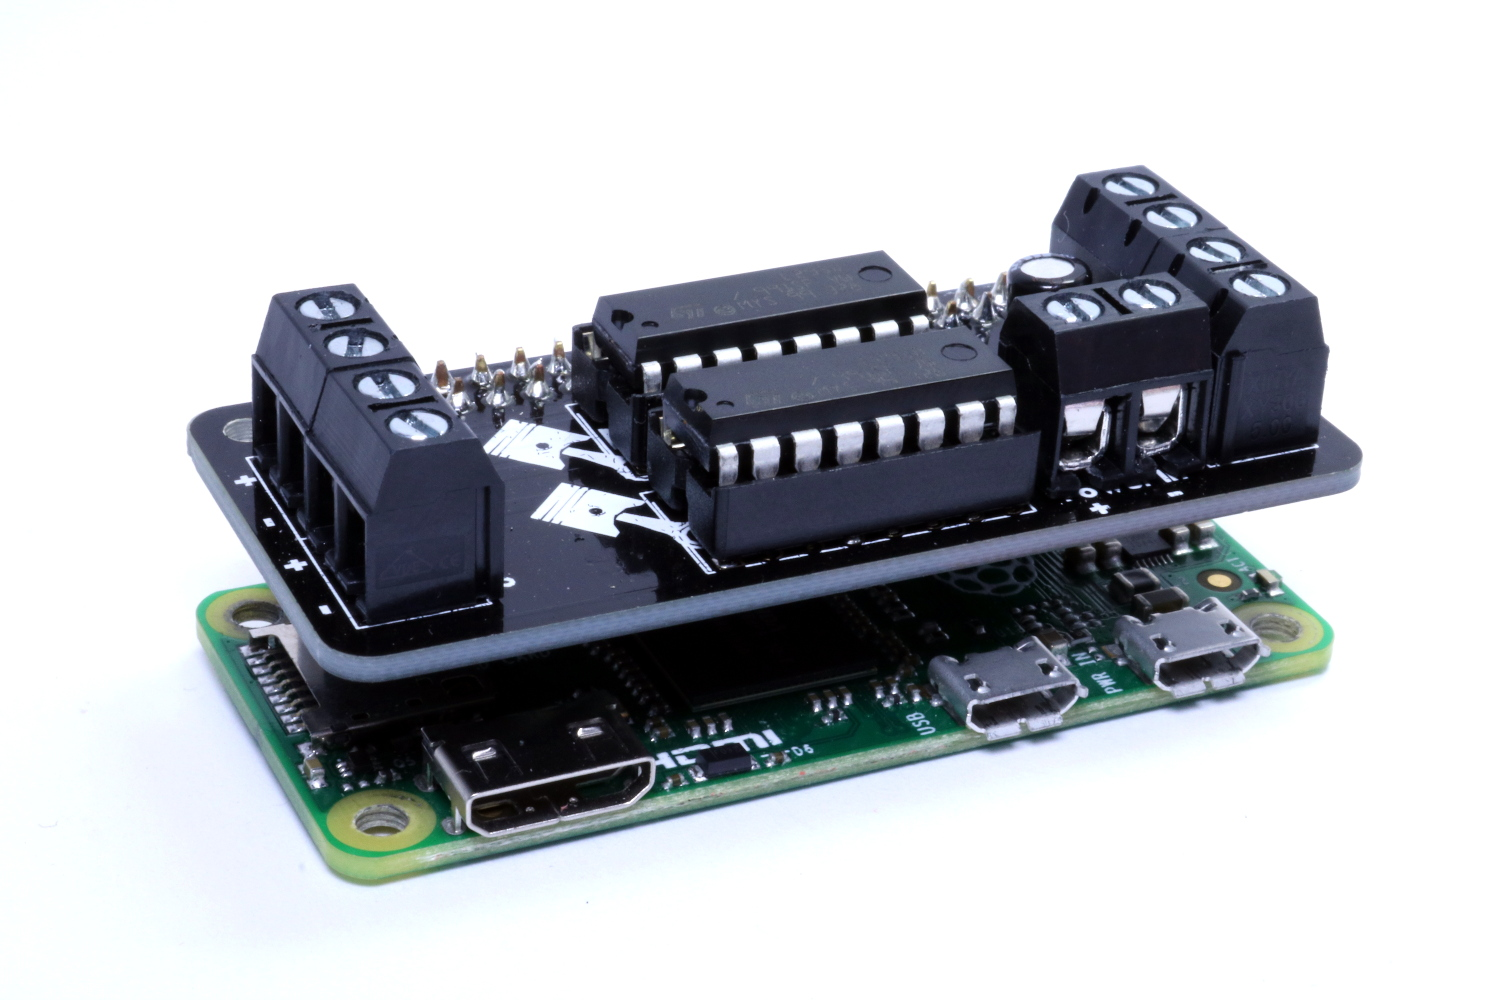 Motozero Review The Magpi Magazinethe Magazine Integrated Stepper Motor Plus Driver Up With Design For While Watching His Favourite Tv Show Sons Of Anarchy That Biker Influence Has Led To Coolest Looking